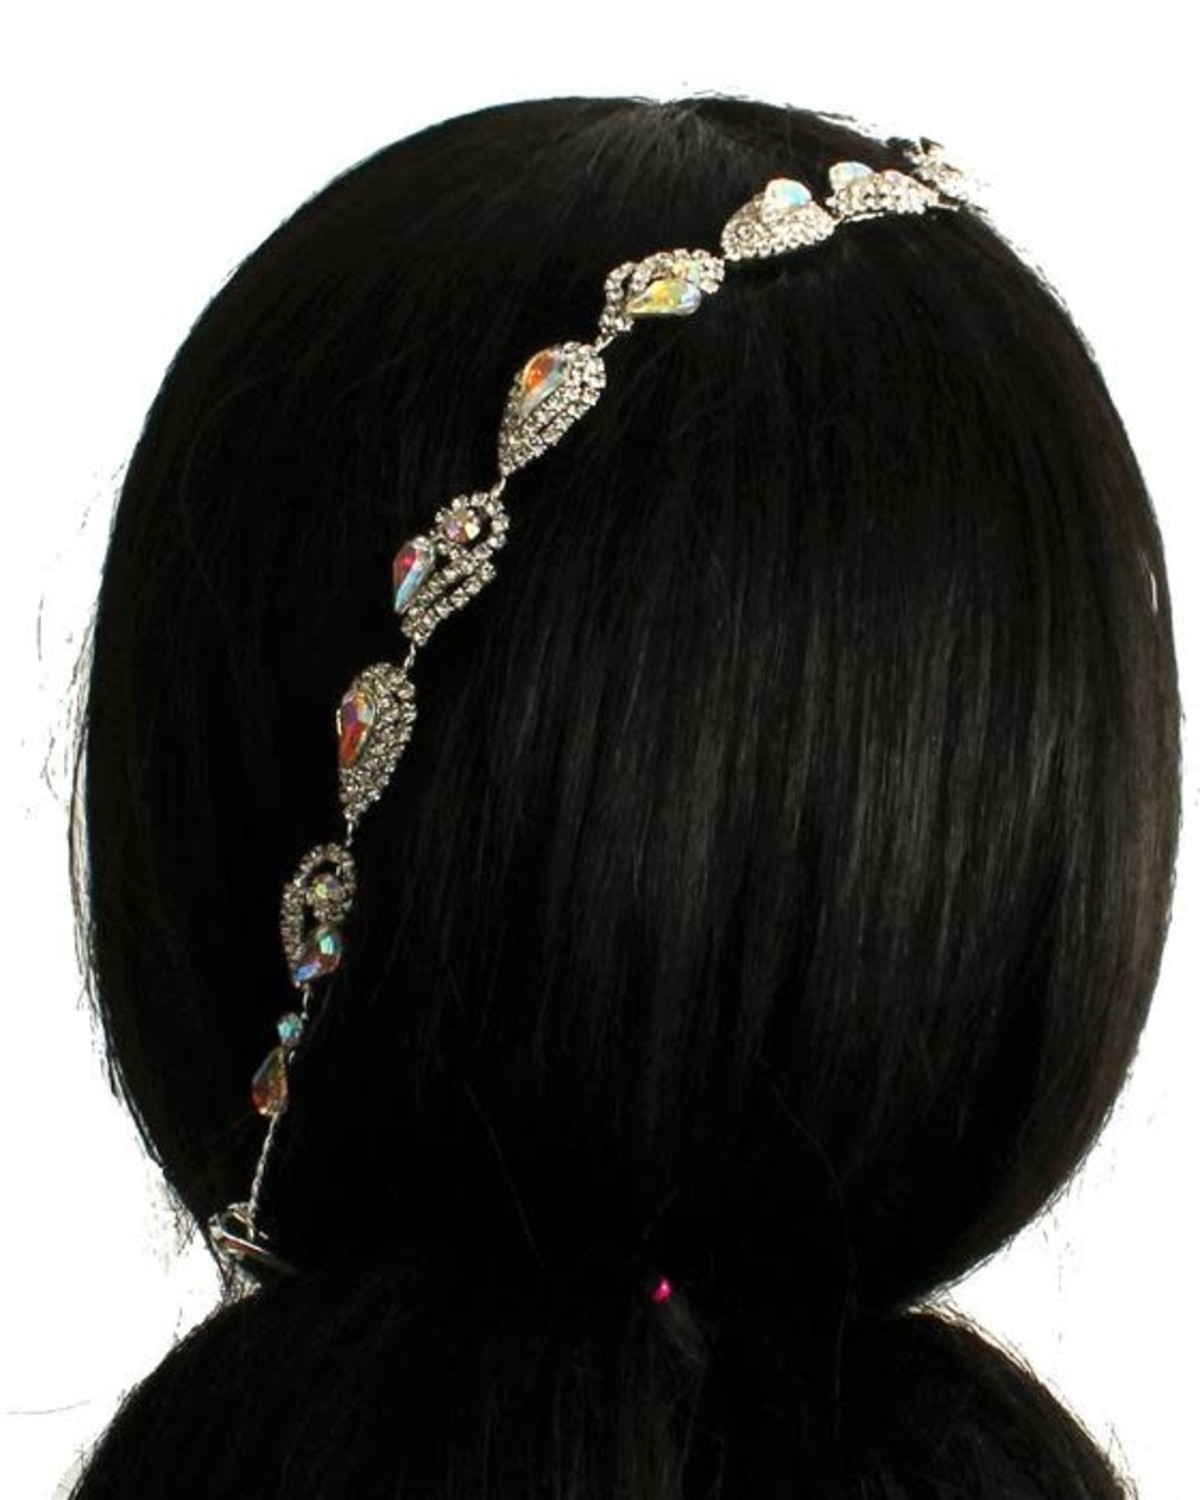 Dripping Beauty Hair Pin